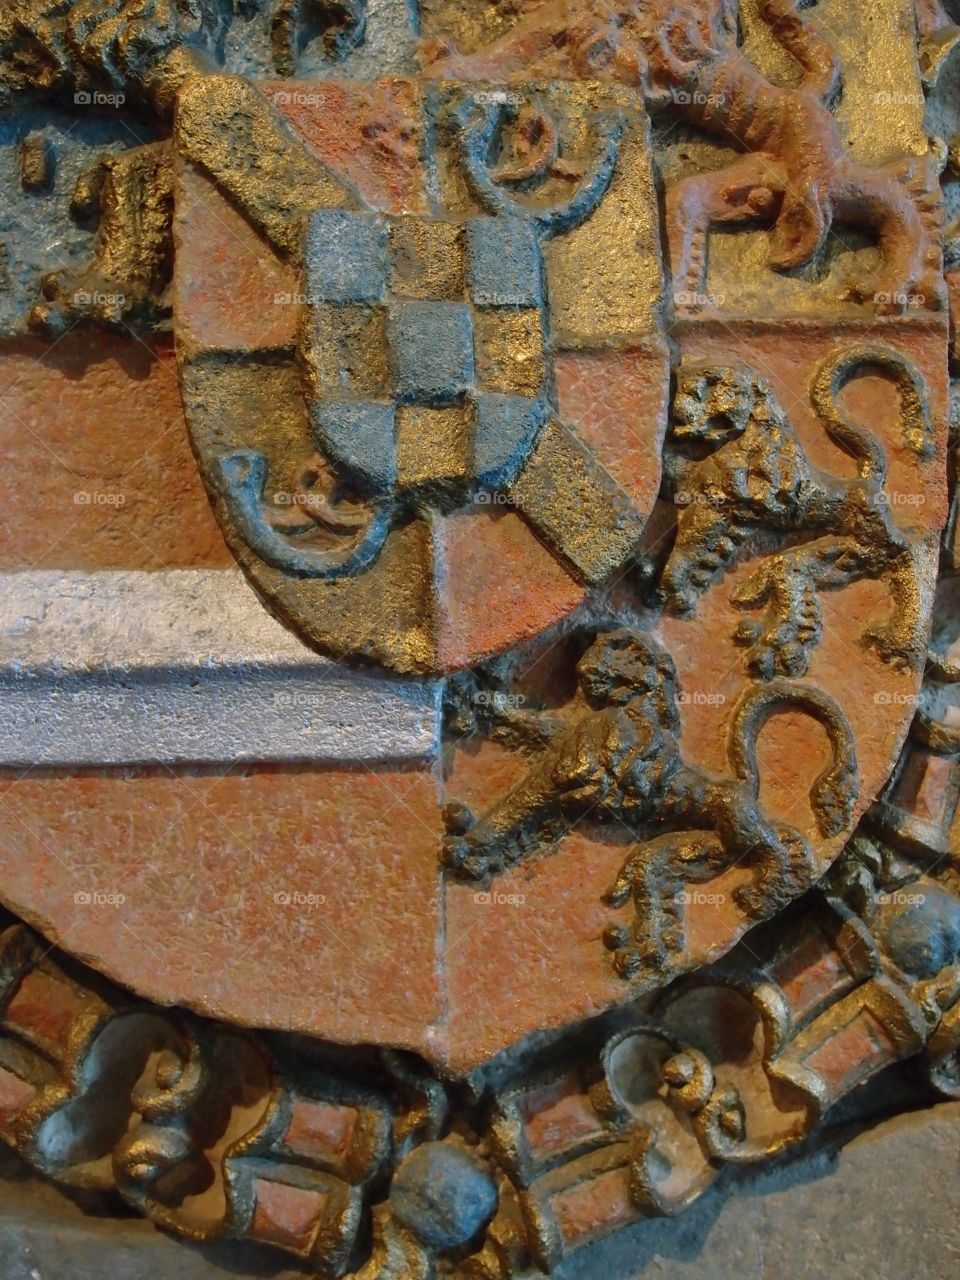 A decorative family crest with decorative lions and a patterned shield in the Chateau dé Vianden in Northern Luxembourg.